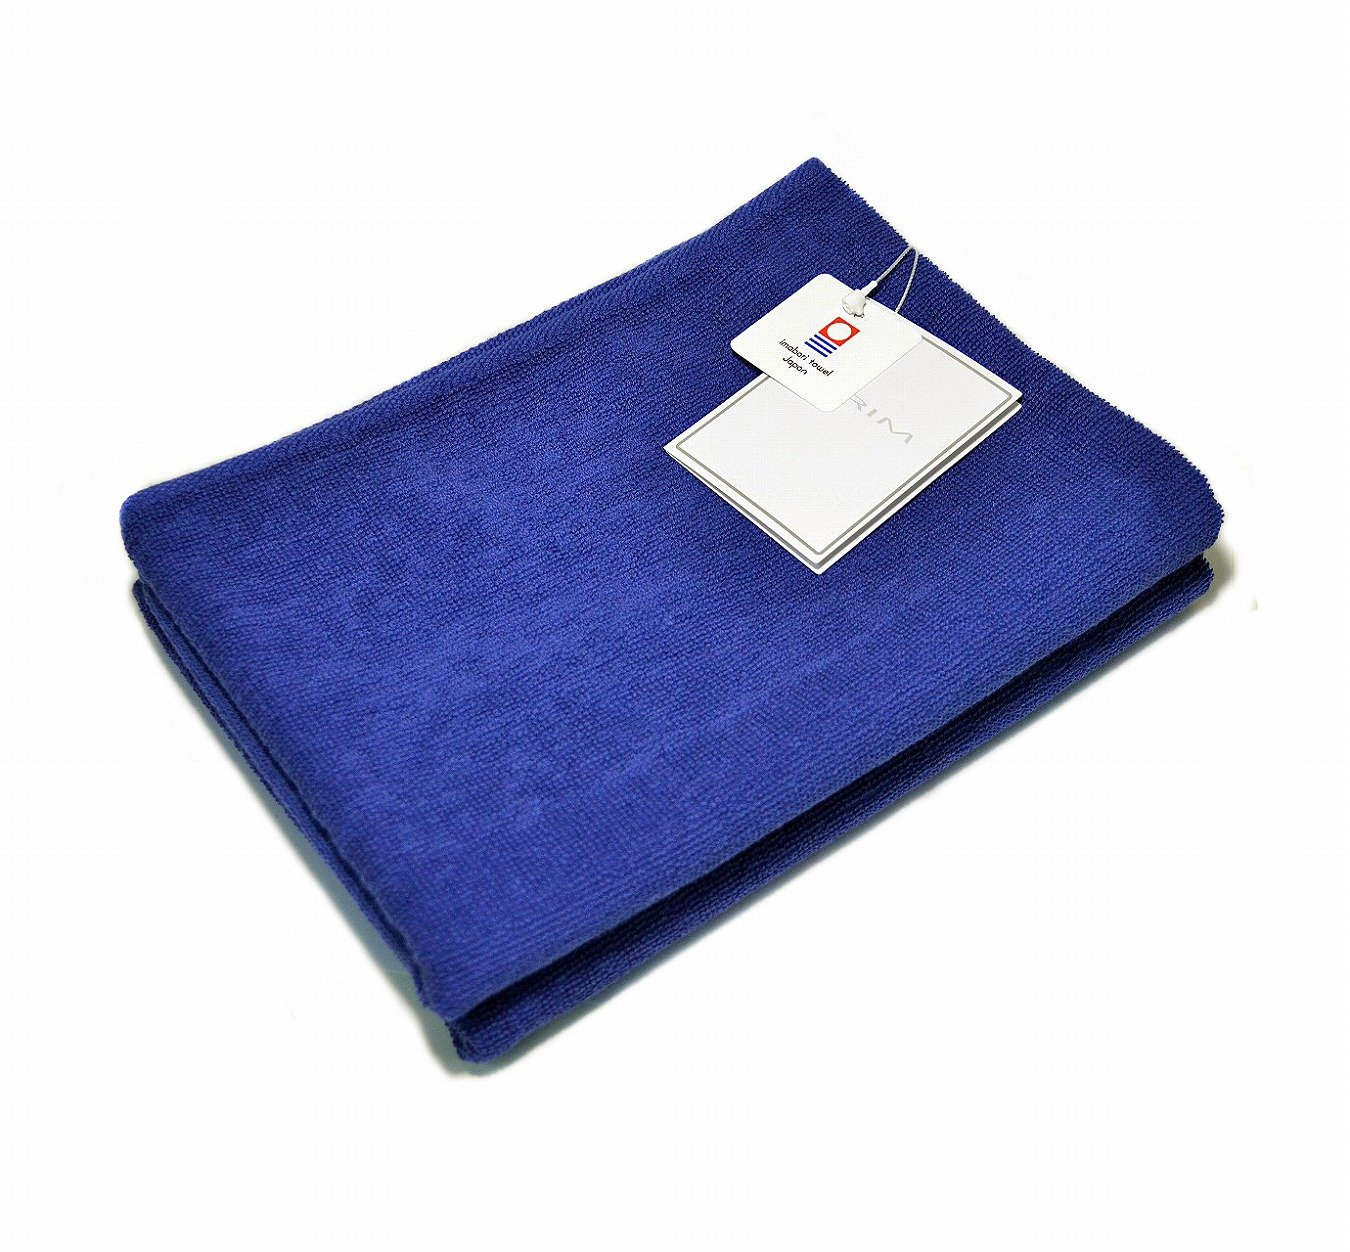 Imabari Hotel Towel Face Towel Set of 2 (Blue) by Imabari (Image #1)